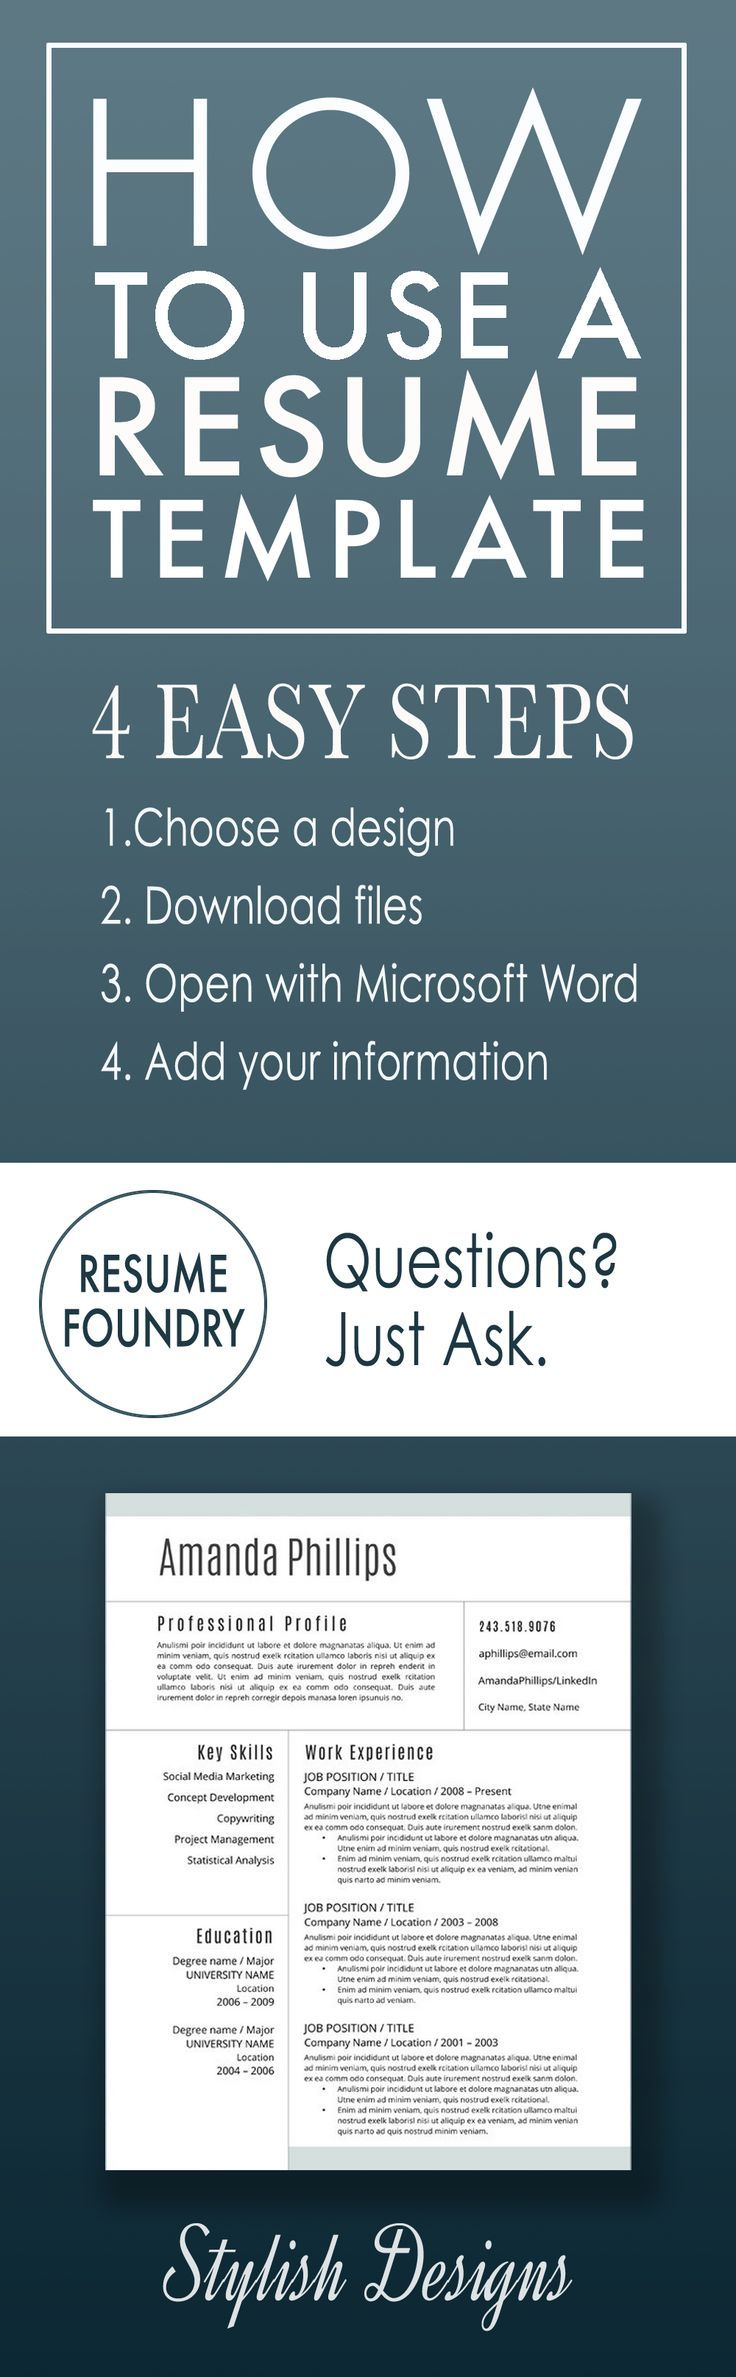 How To Fill Out A Resume Template In Four Easy Steps  Resume